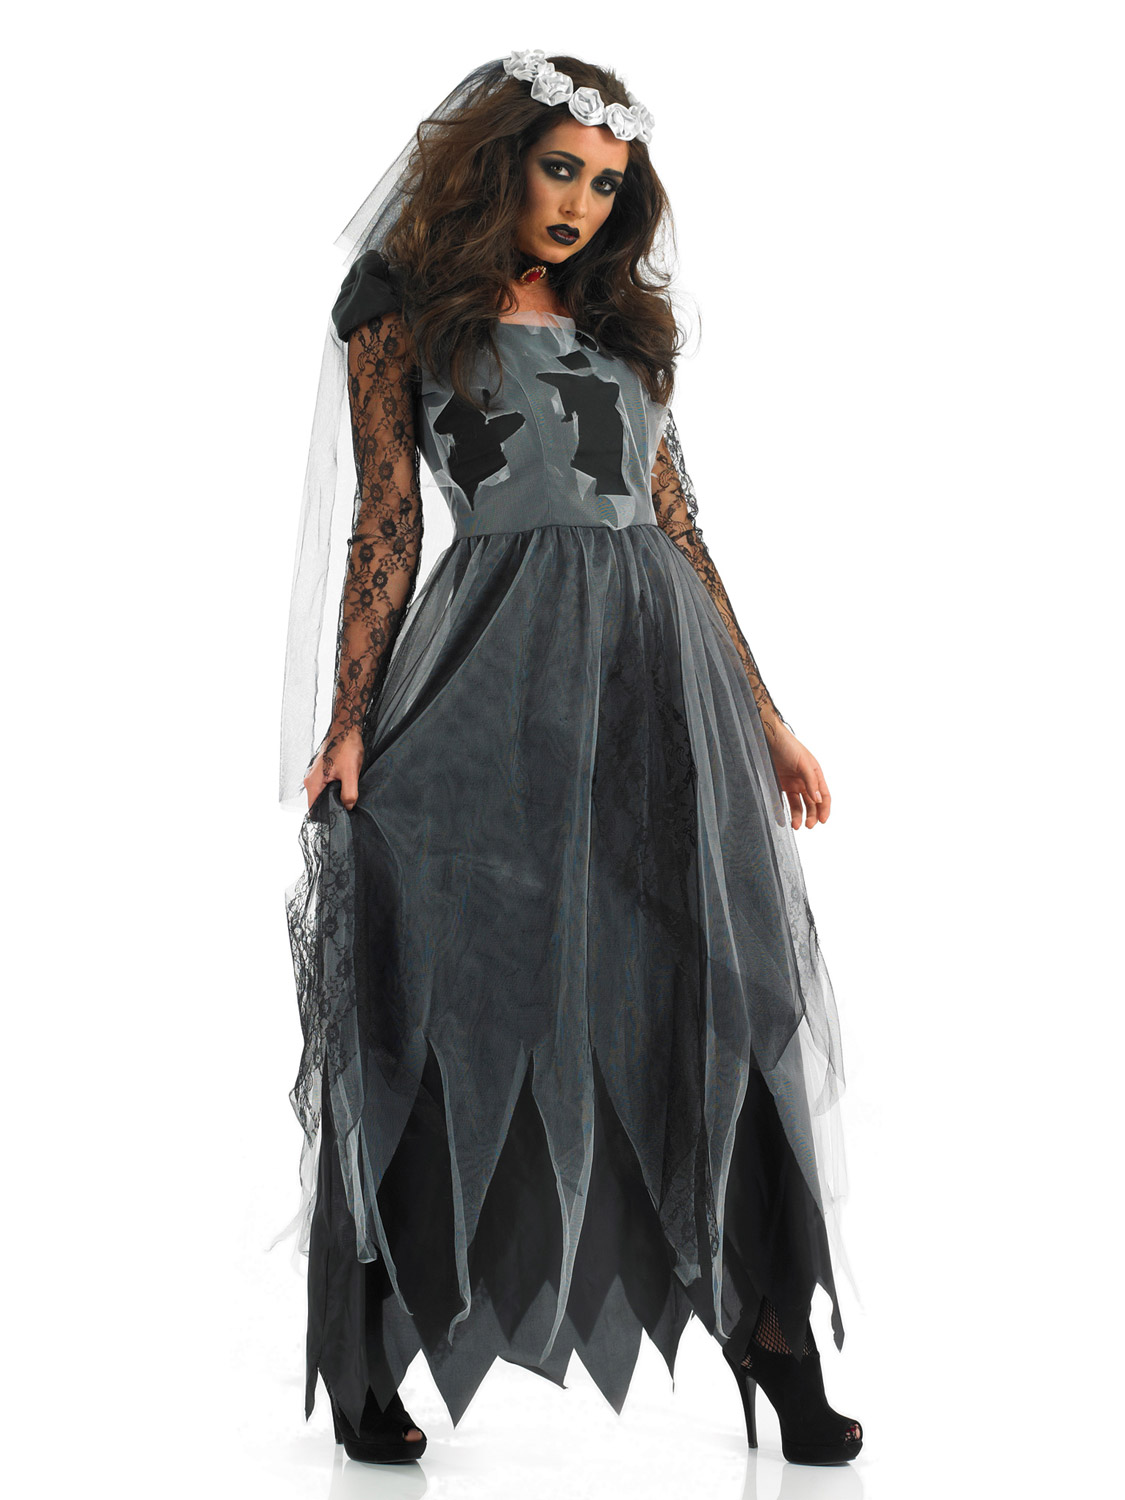 Costume Halloween Uk.Details About Ladies Corpse Bride Costume Halloween Fancy Dress Costume Gothic Adult Plus Size